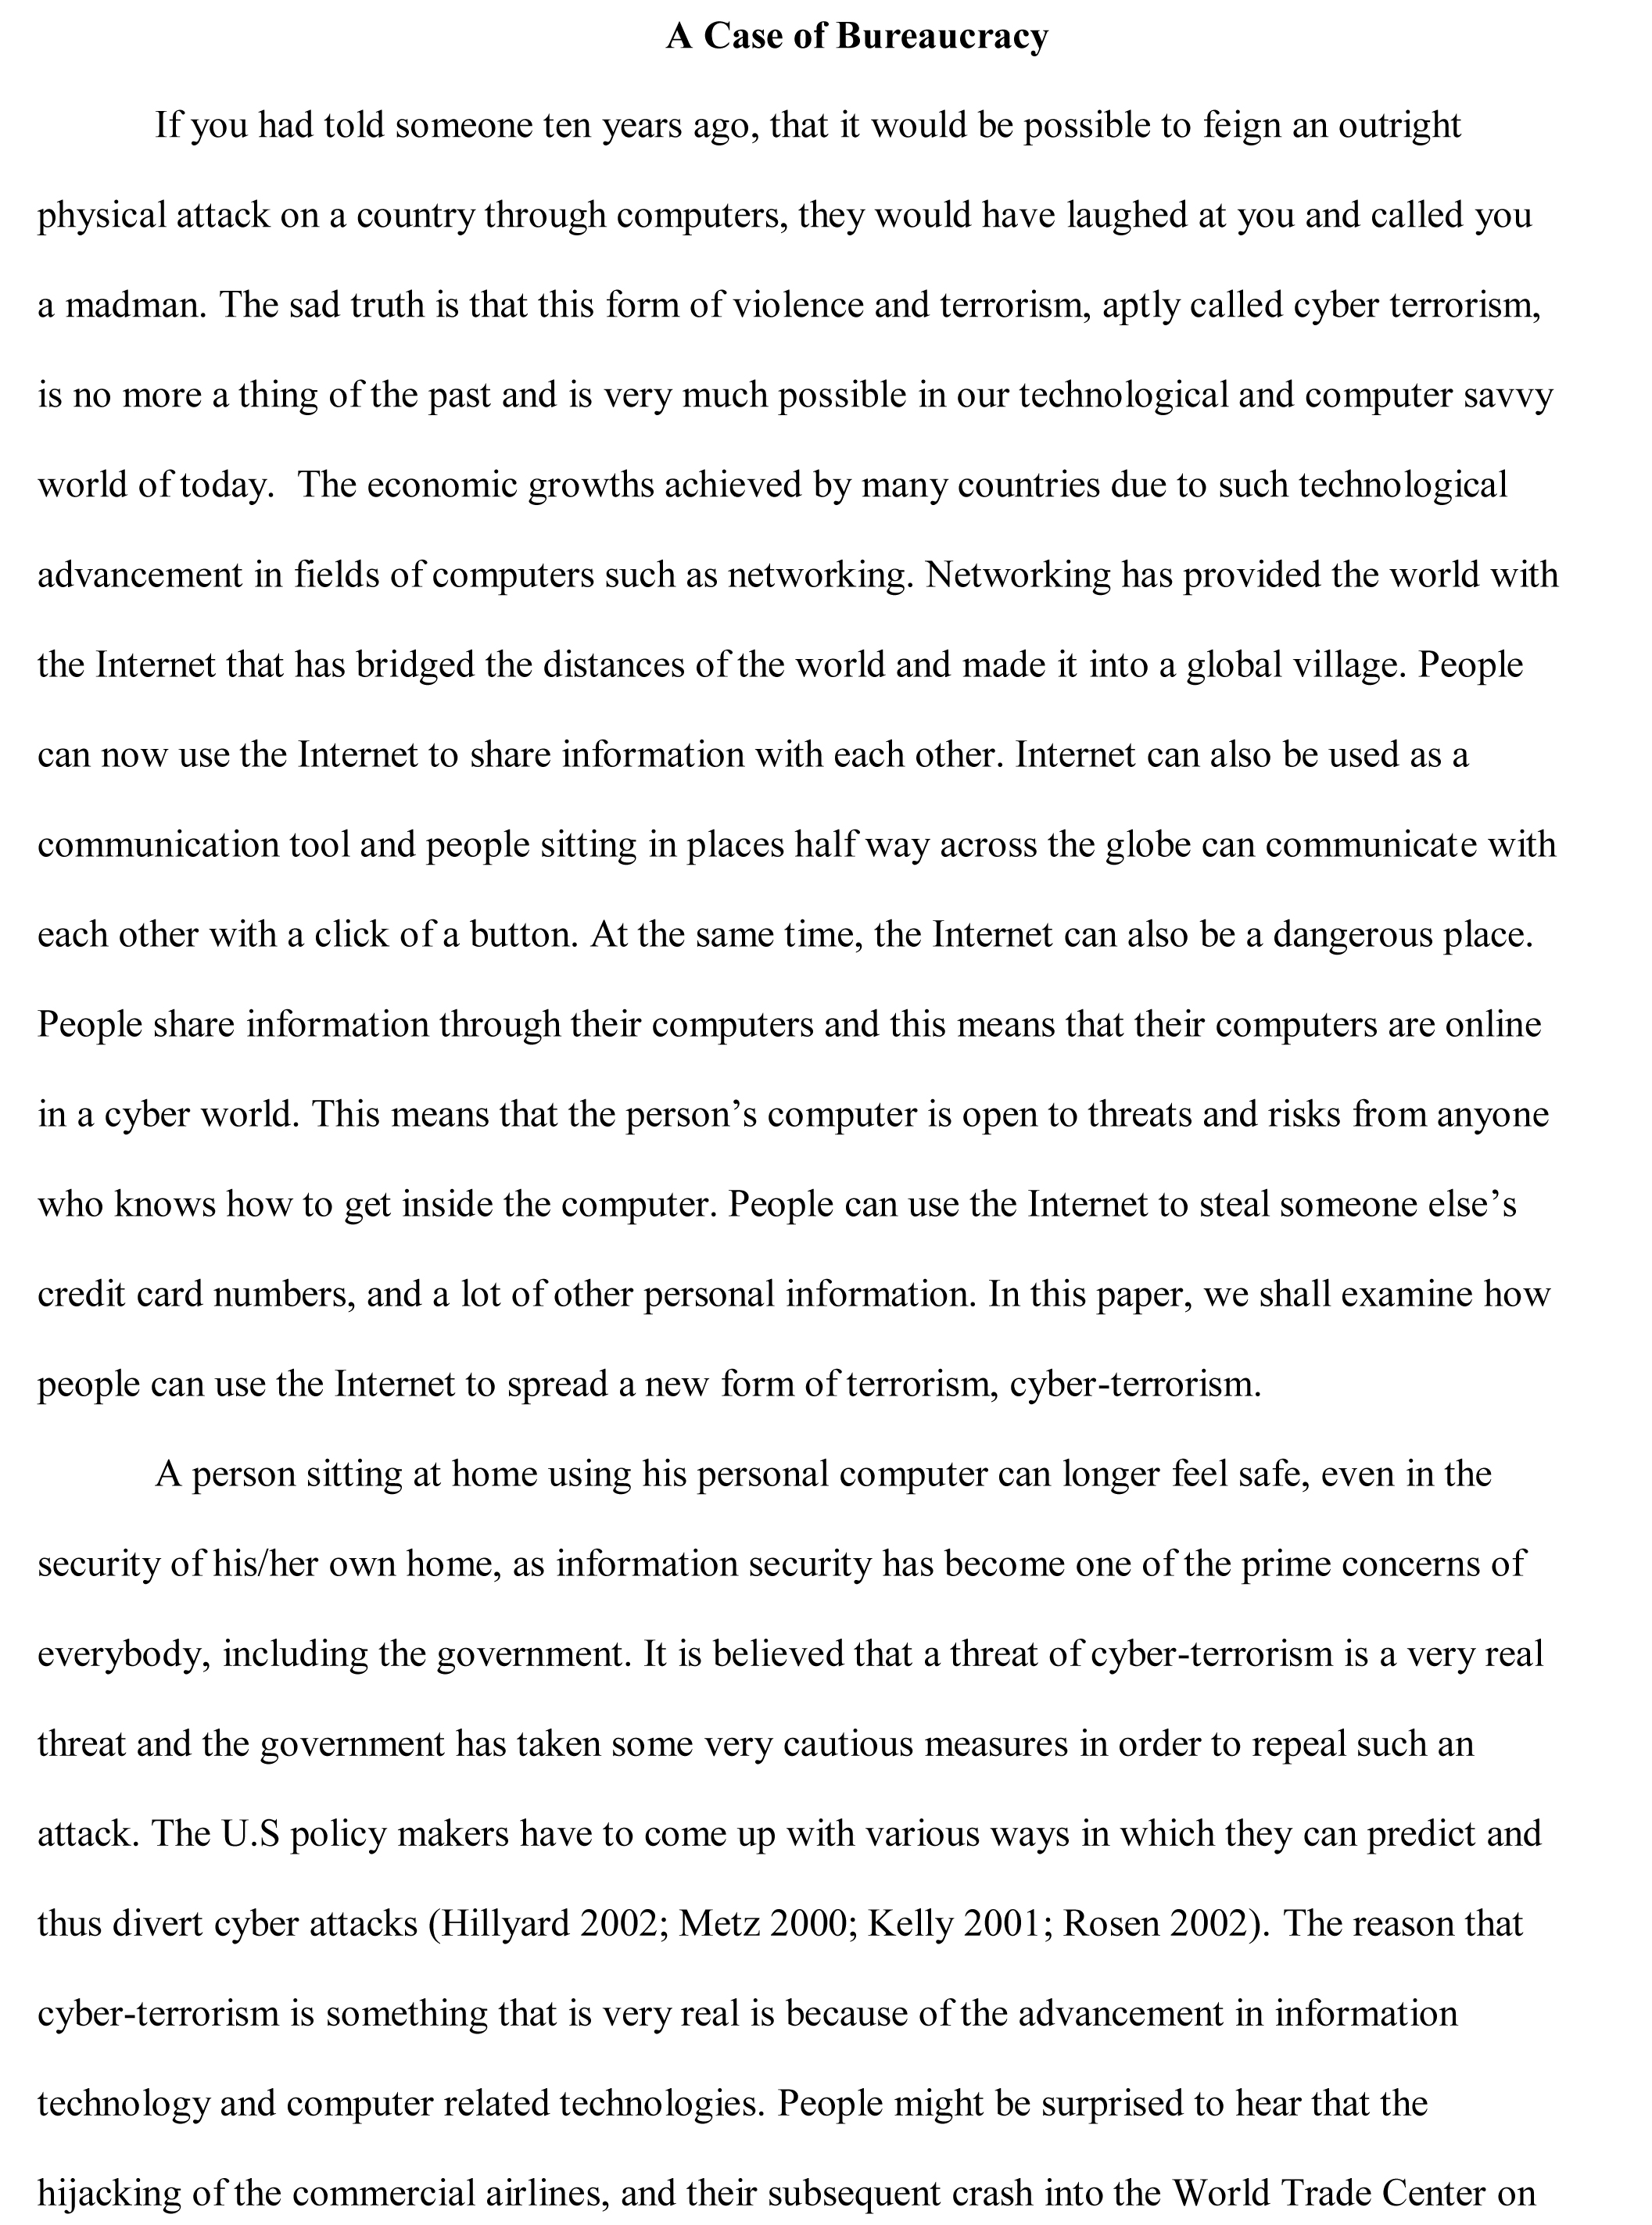 007 Rsearch Paper Free Sample Research Dreaded Essays Green Technology Full